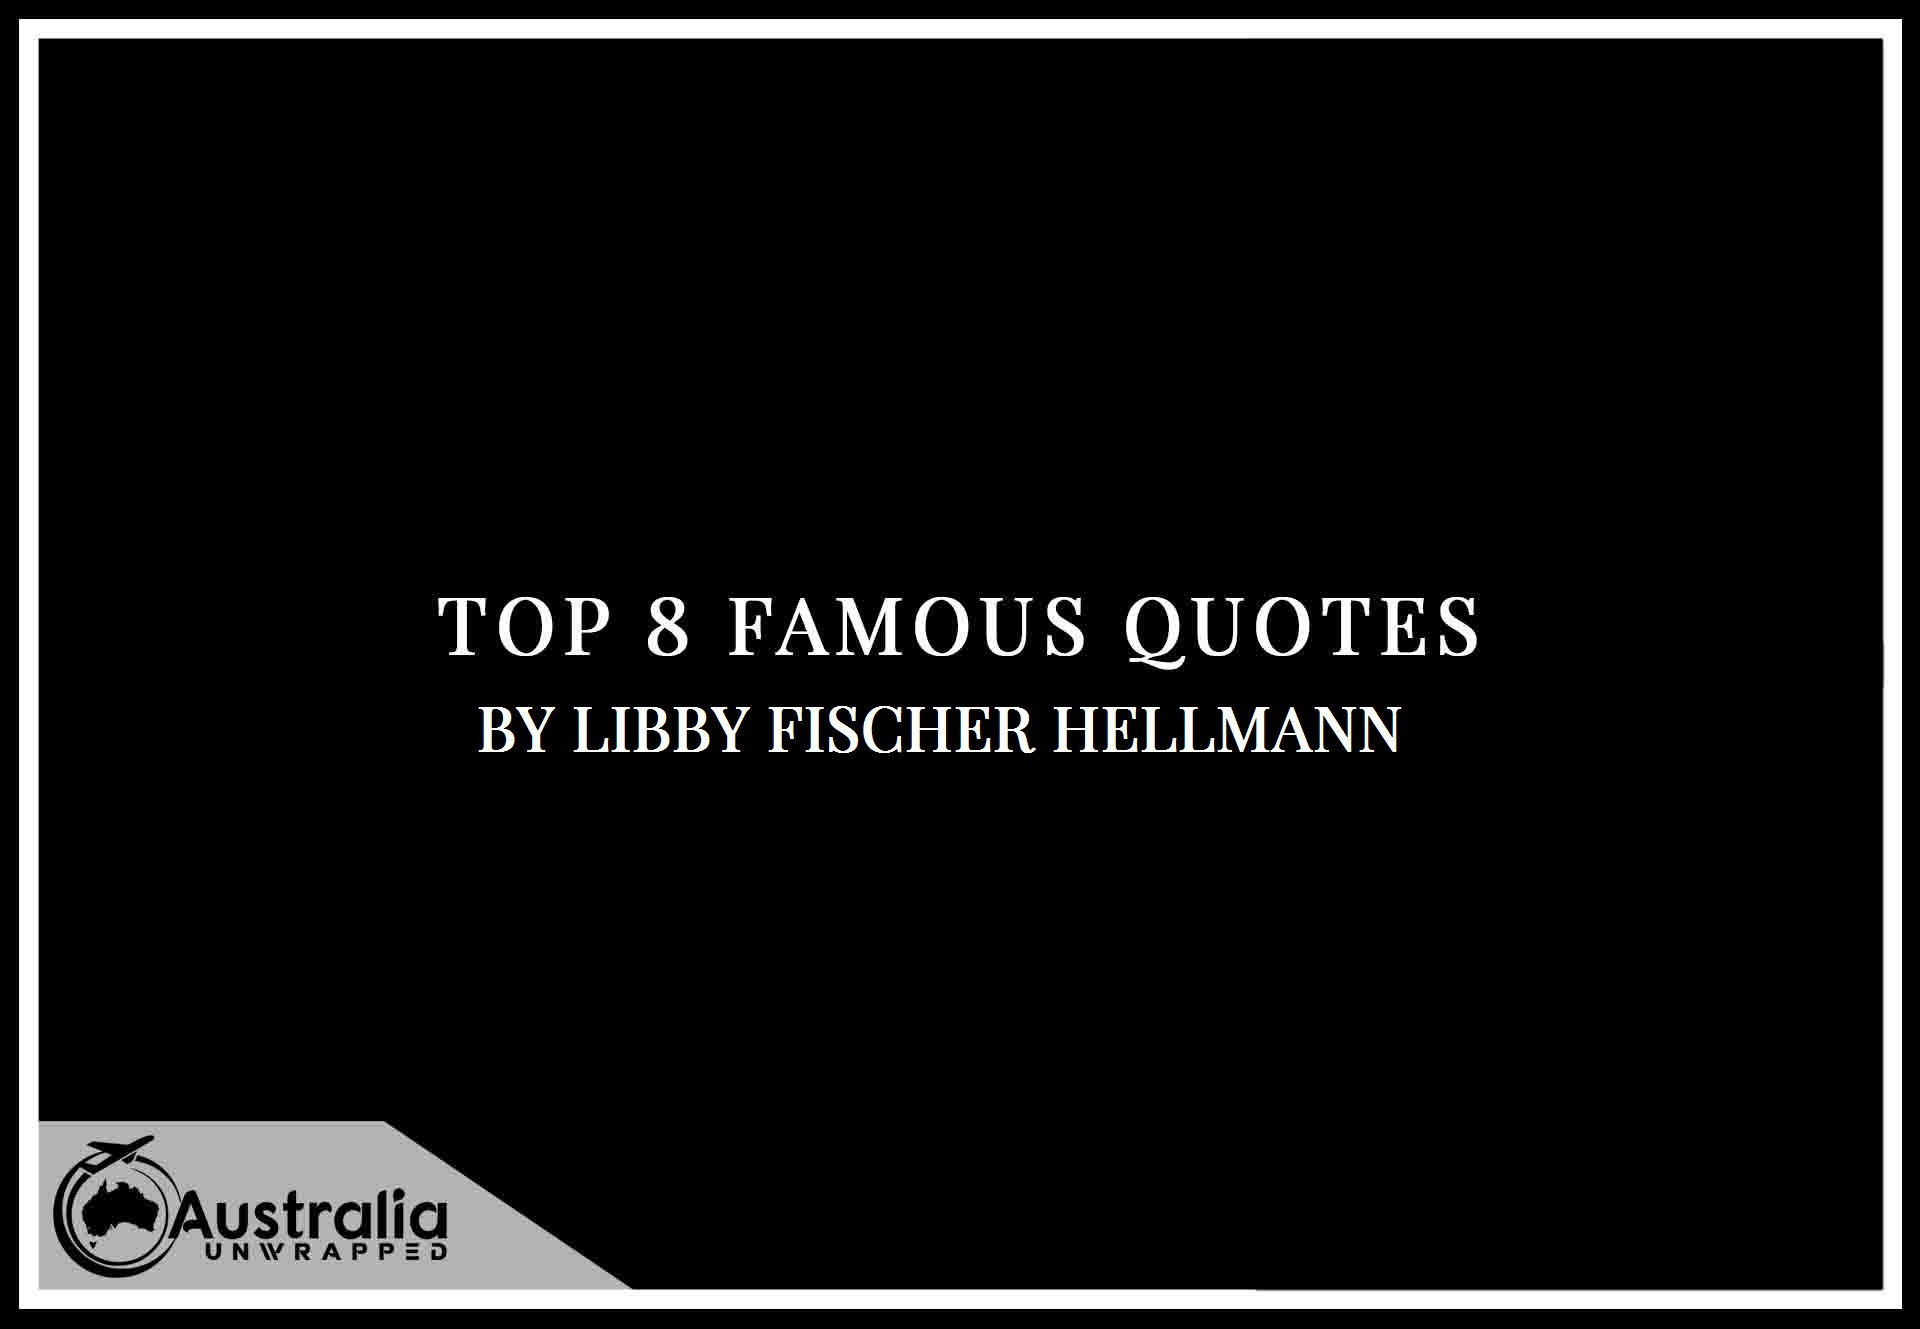 Libby Fischer Hellmann's Top 8 Popular and Famous Quotes